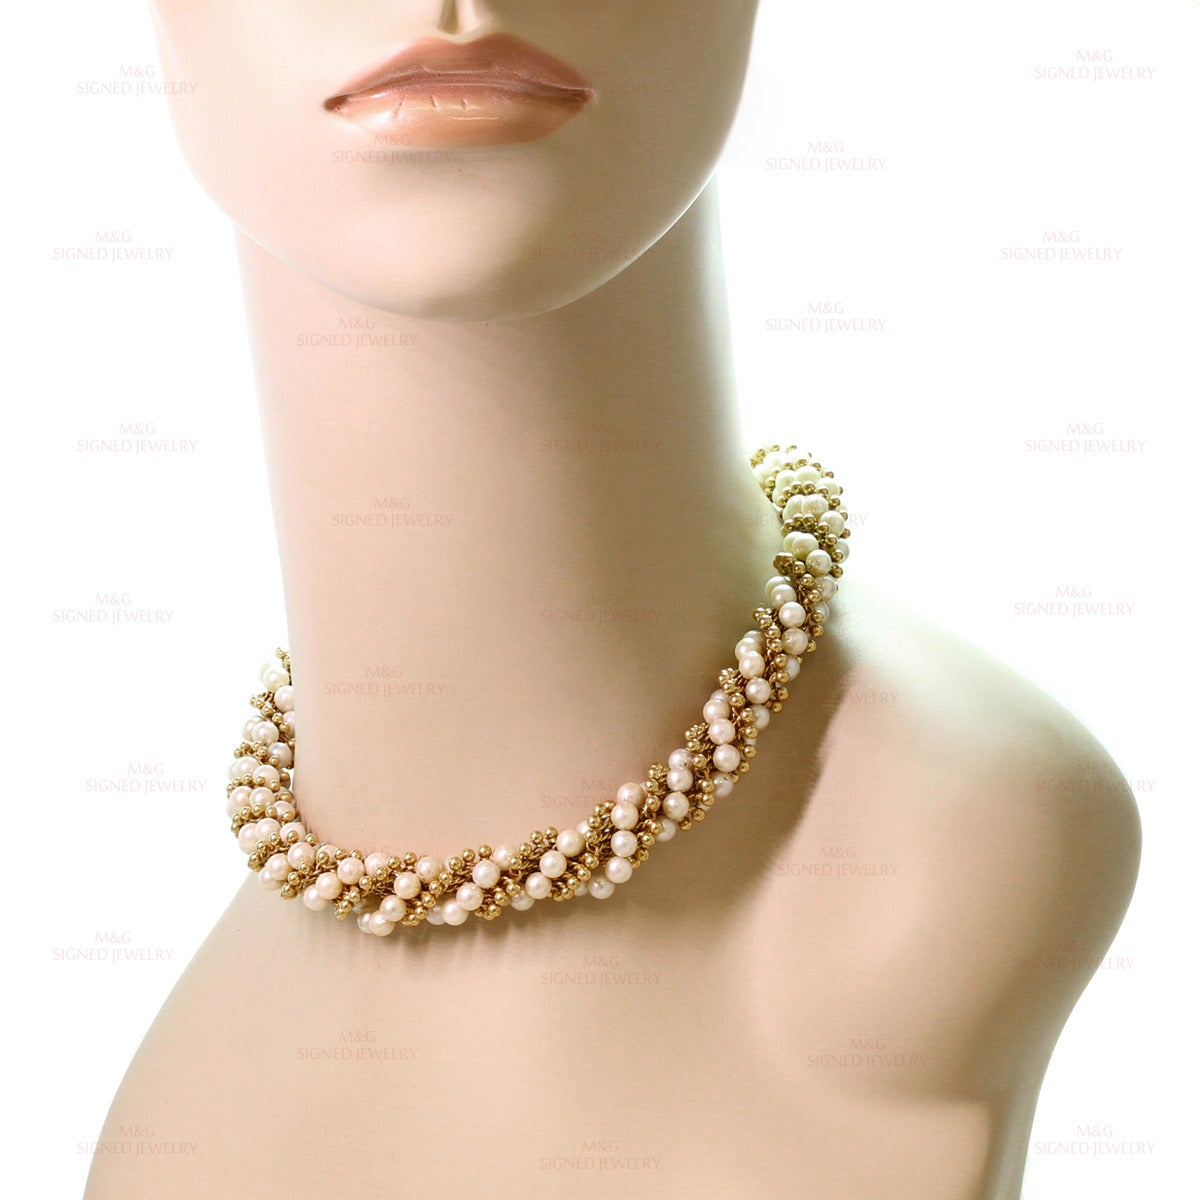 1960s VAN CLEEF & ARPELS Twist Cultured Pearl Yellow Gold Necklace In Good Condition For Sale In New York, NY